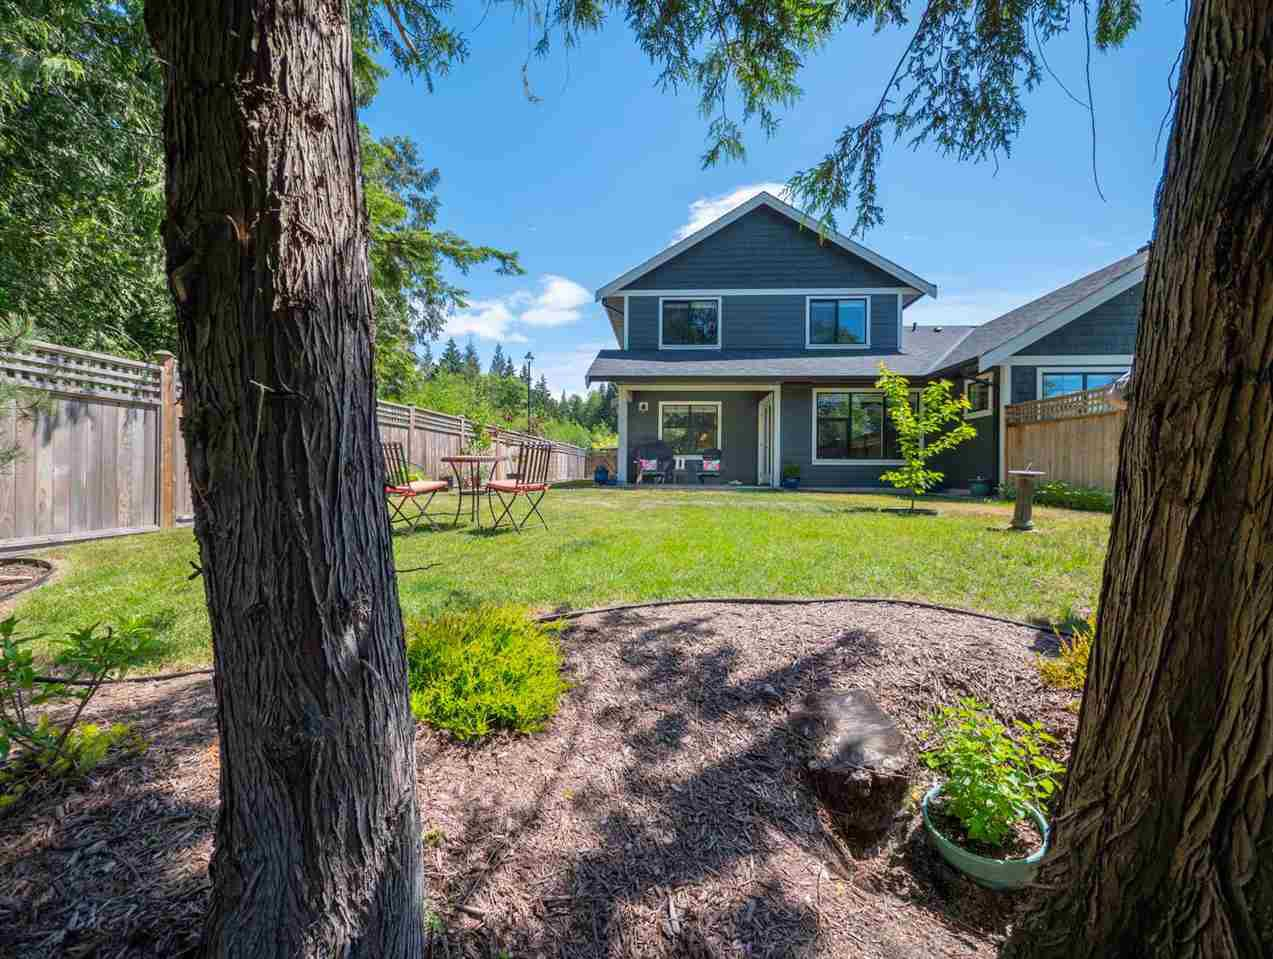 Main Photo: 803 GERUSSI Lane in Gibsons: Gibsons & Area House 1/2 Duplex for sale (Sunshine Coast)  : MLS®# R2273897